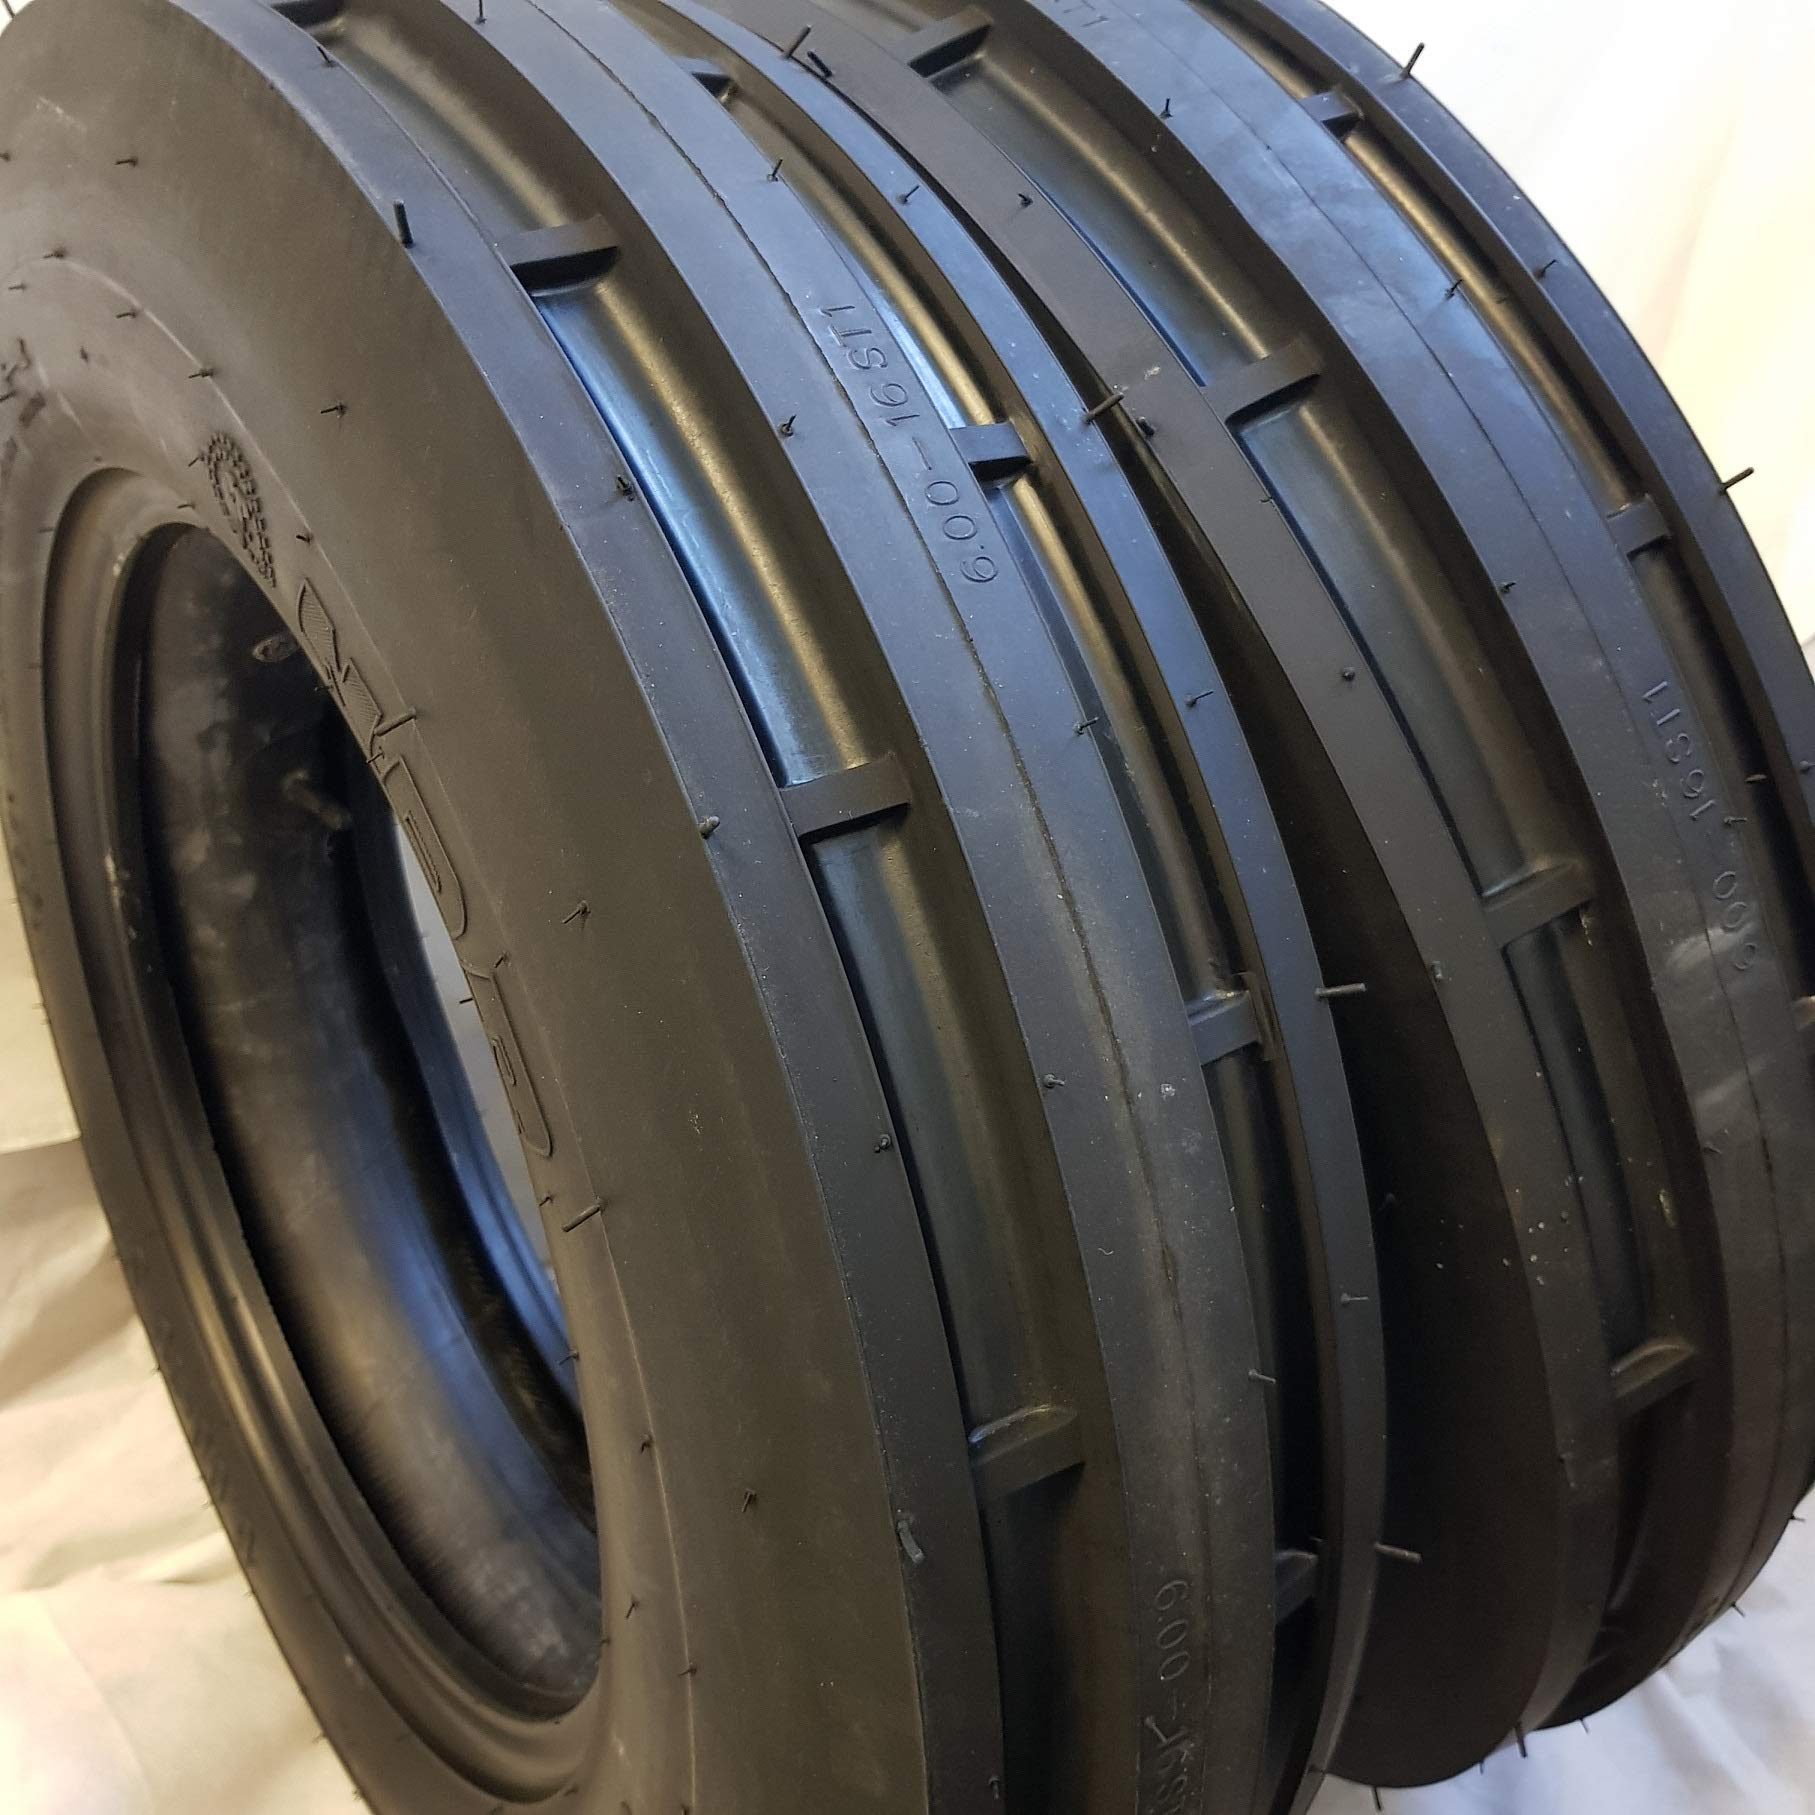 (2 TIRES + 2 TUBES) 6.00-16 8 PLY ROAD WARRIOR NDR ST-1 F2 3-Rib Farm Tractor Tire 6.00x16 by ROAD WARRIOR NDR (Image #1)